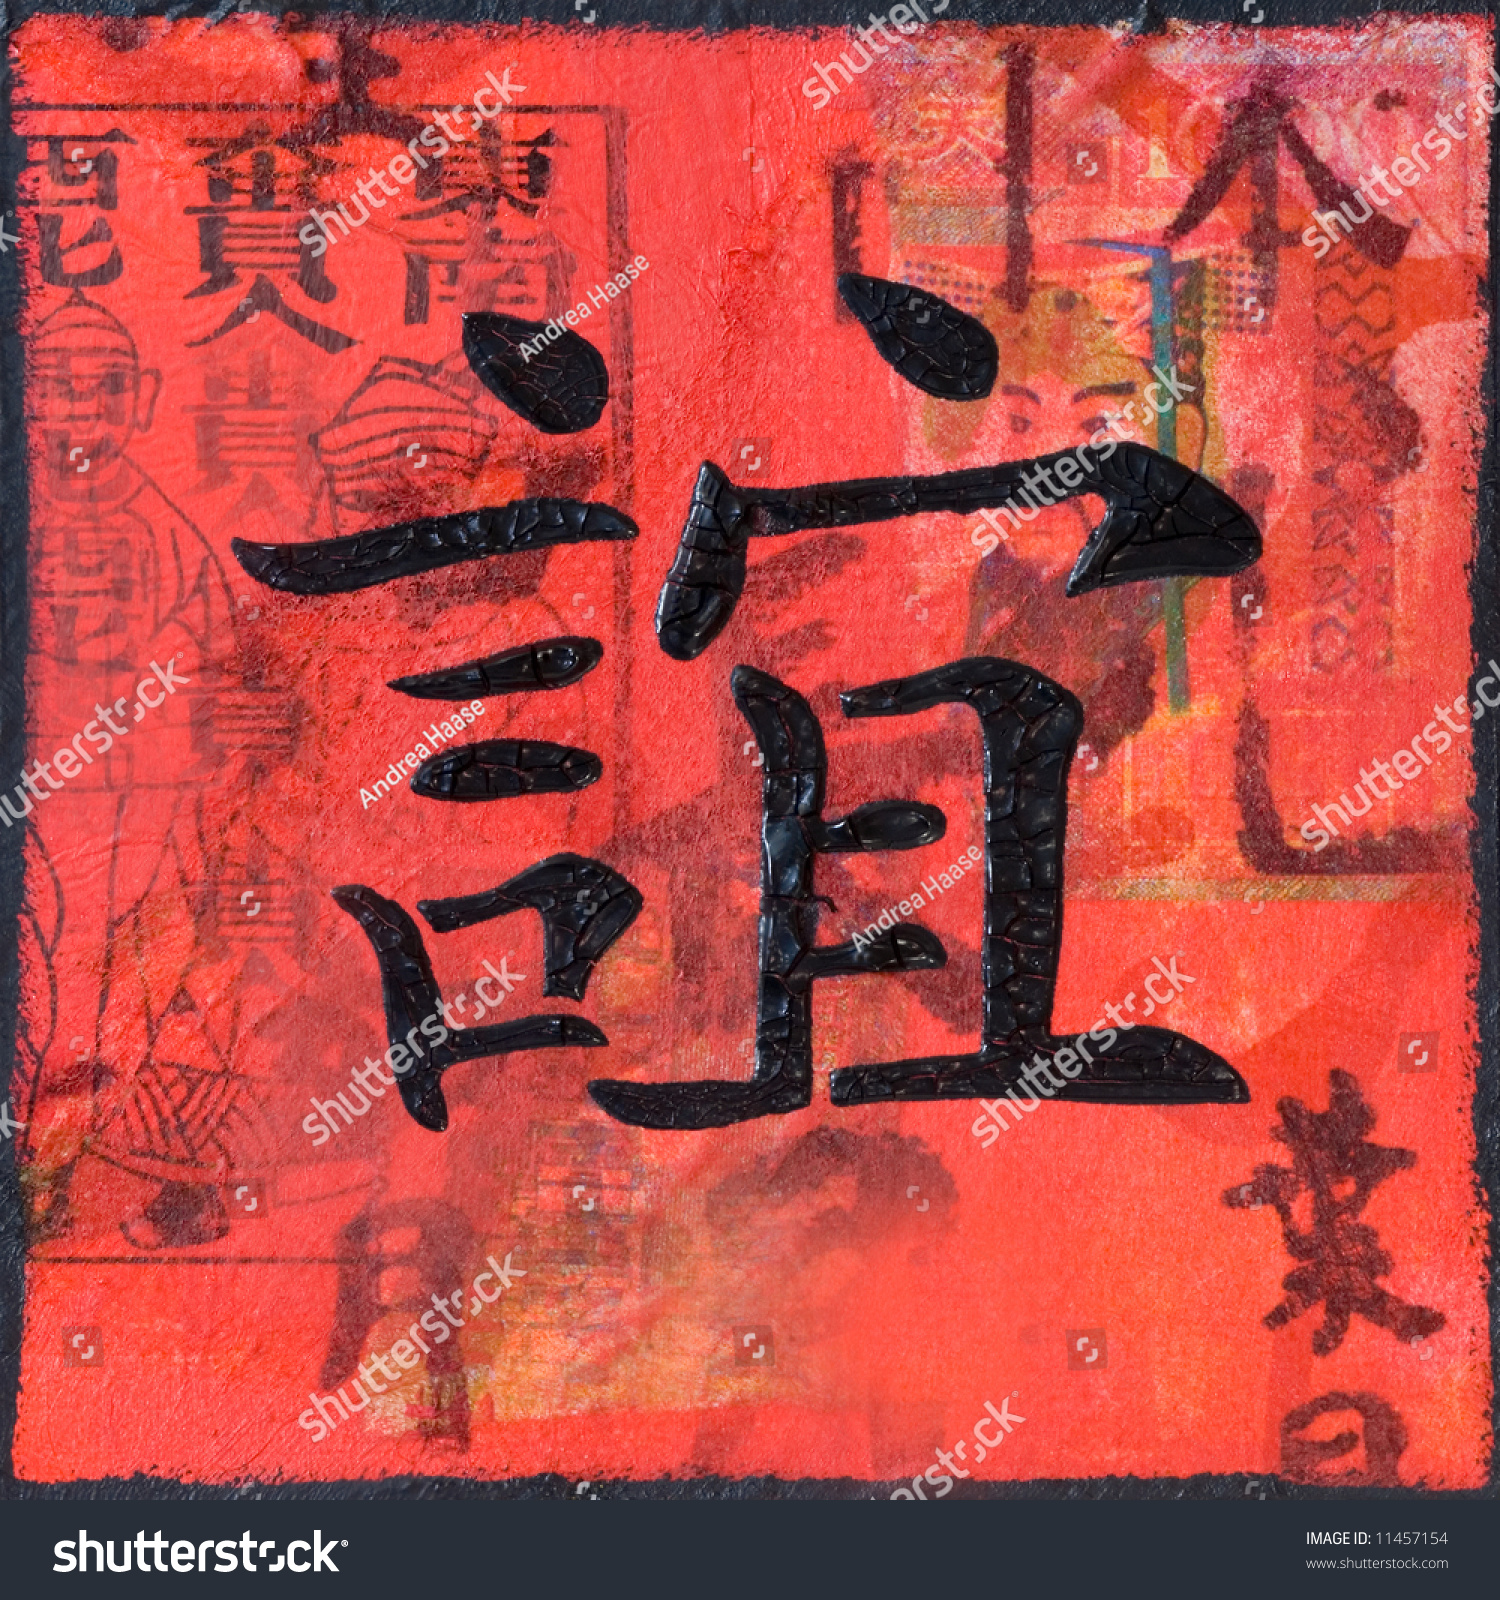 Collage chinese symbol friendship artwork created stock collage with chinese symbol for friendship artwork is created and painted by myself biocorpaavc Images